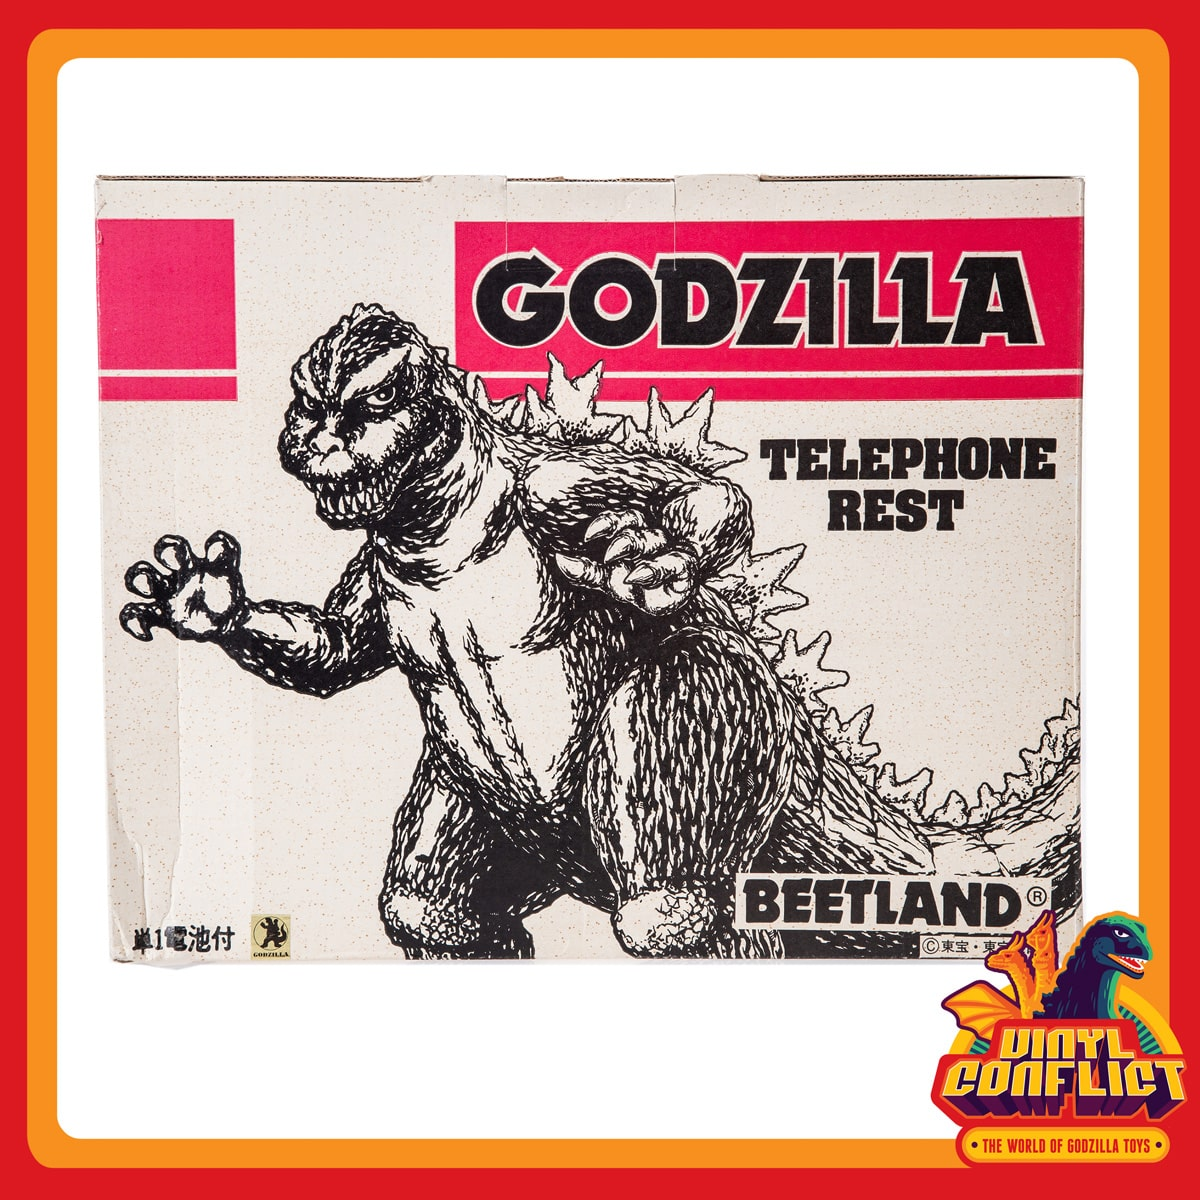 VINYL CONFLICT: The World of Godzilla Toys Exhibition & Auction Catalog  ($49 95 + $8 50 Domestic Shipping) - Peekaboo Gallery